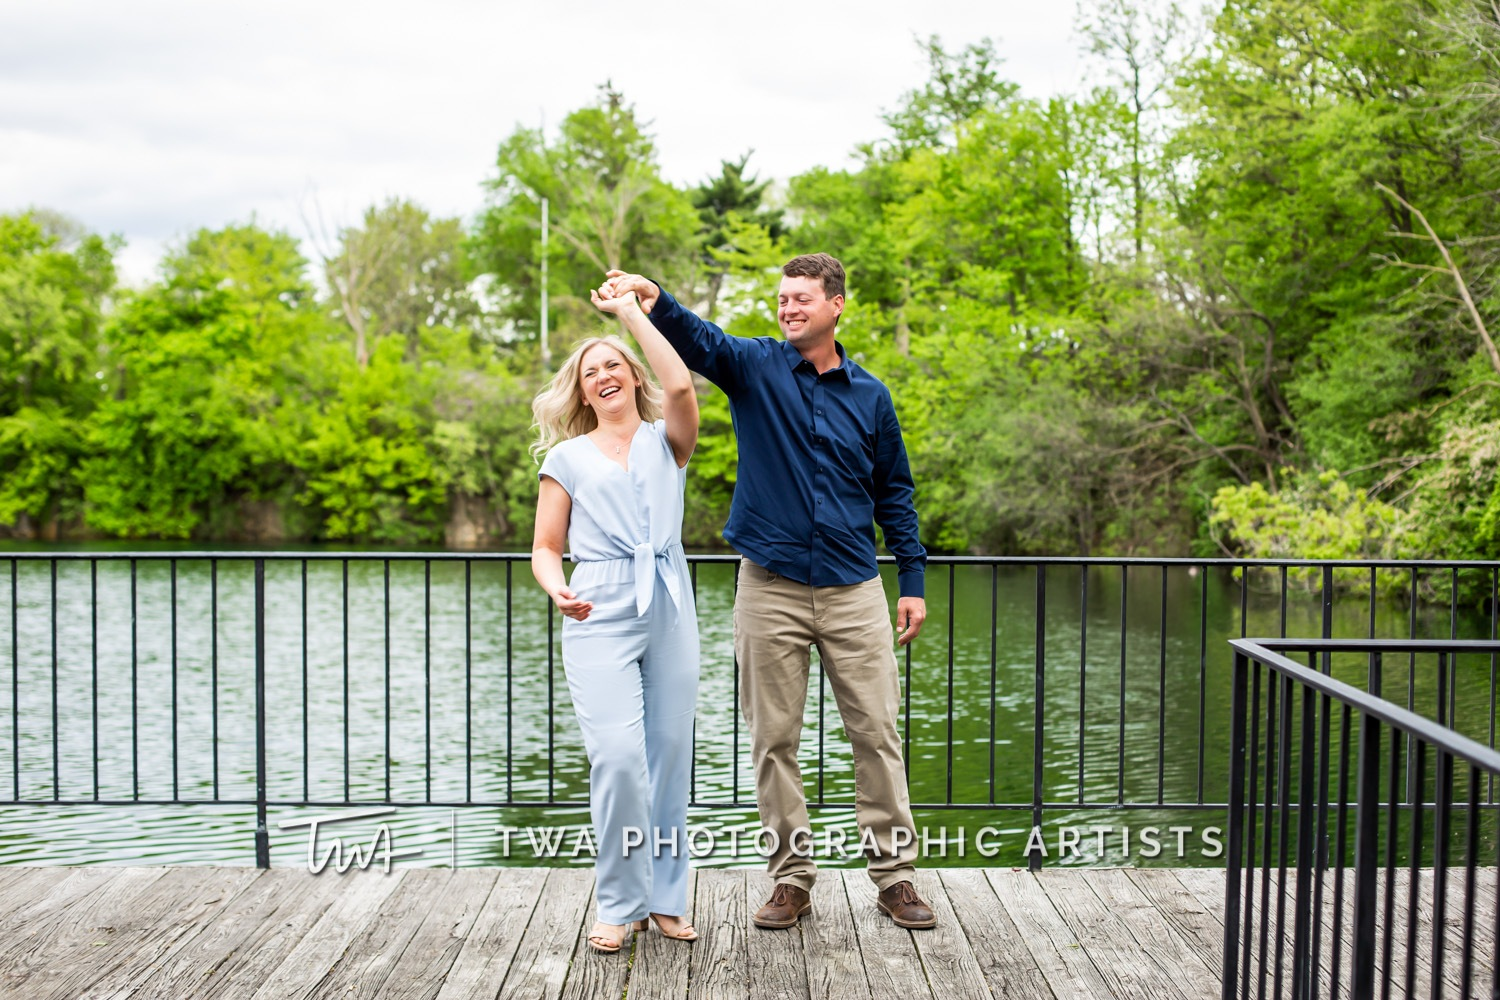 Chicago-Wedding-Photographer-TWA-Photographic-Artists-Naperville-Riverwalk_Fletcher_McDonough_MJ-010